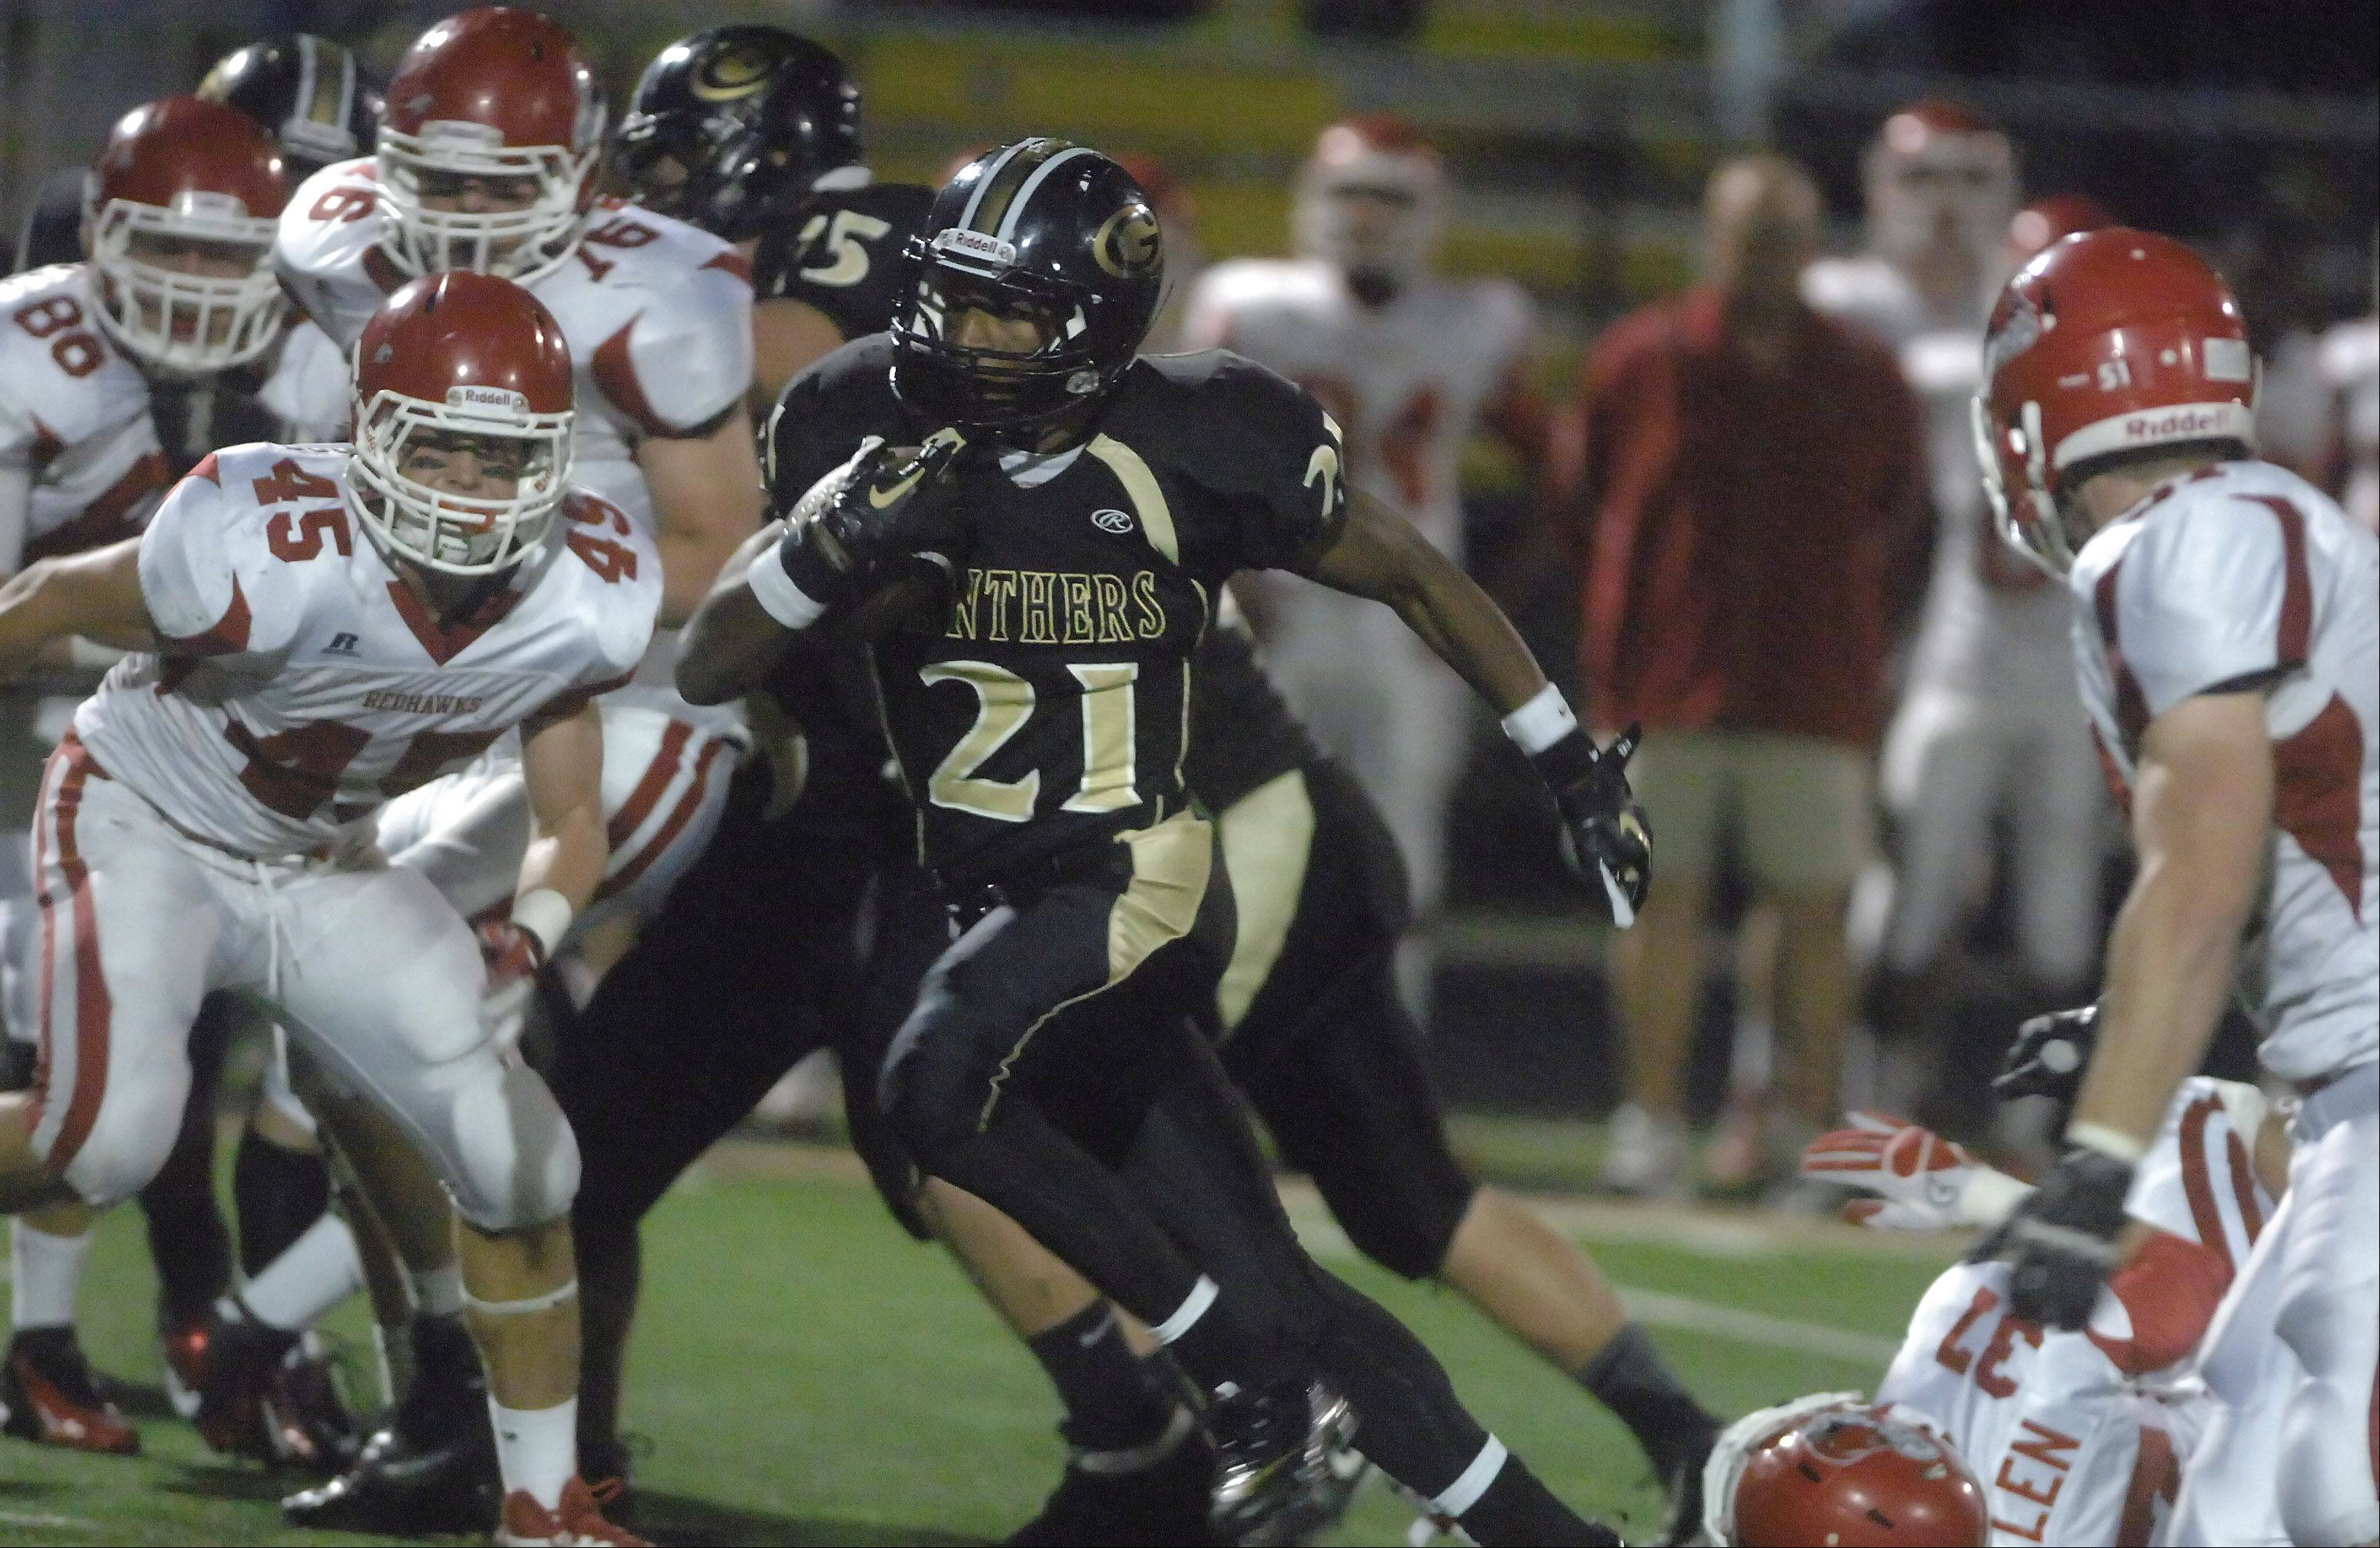 Justin Jackson of Glenbard North moves the ball during the Naperville Central vs. Glenbard North football game Friday in Carol Stream.